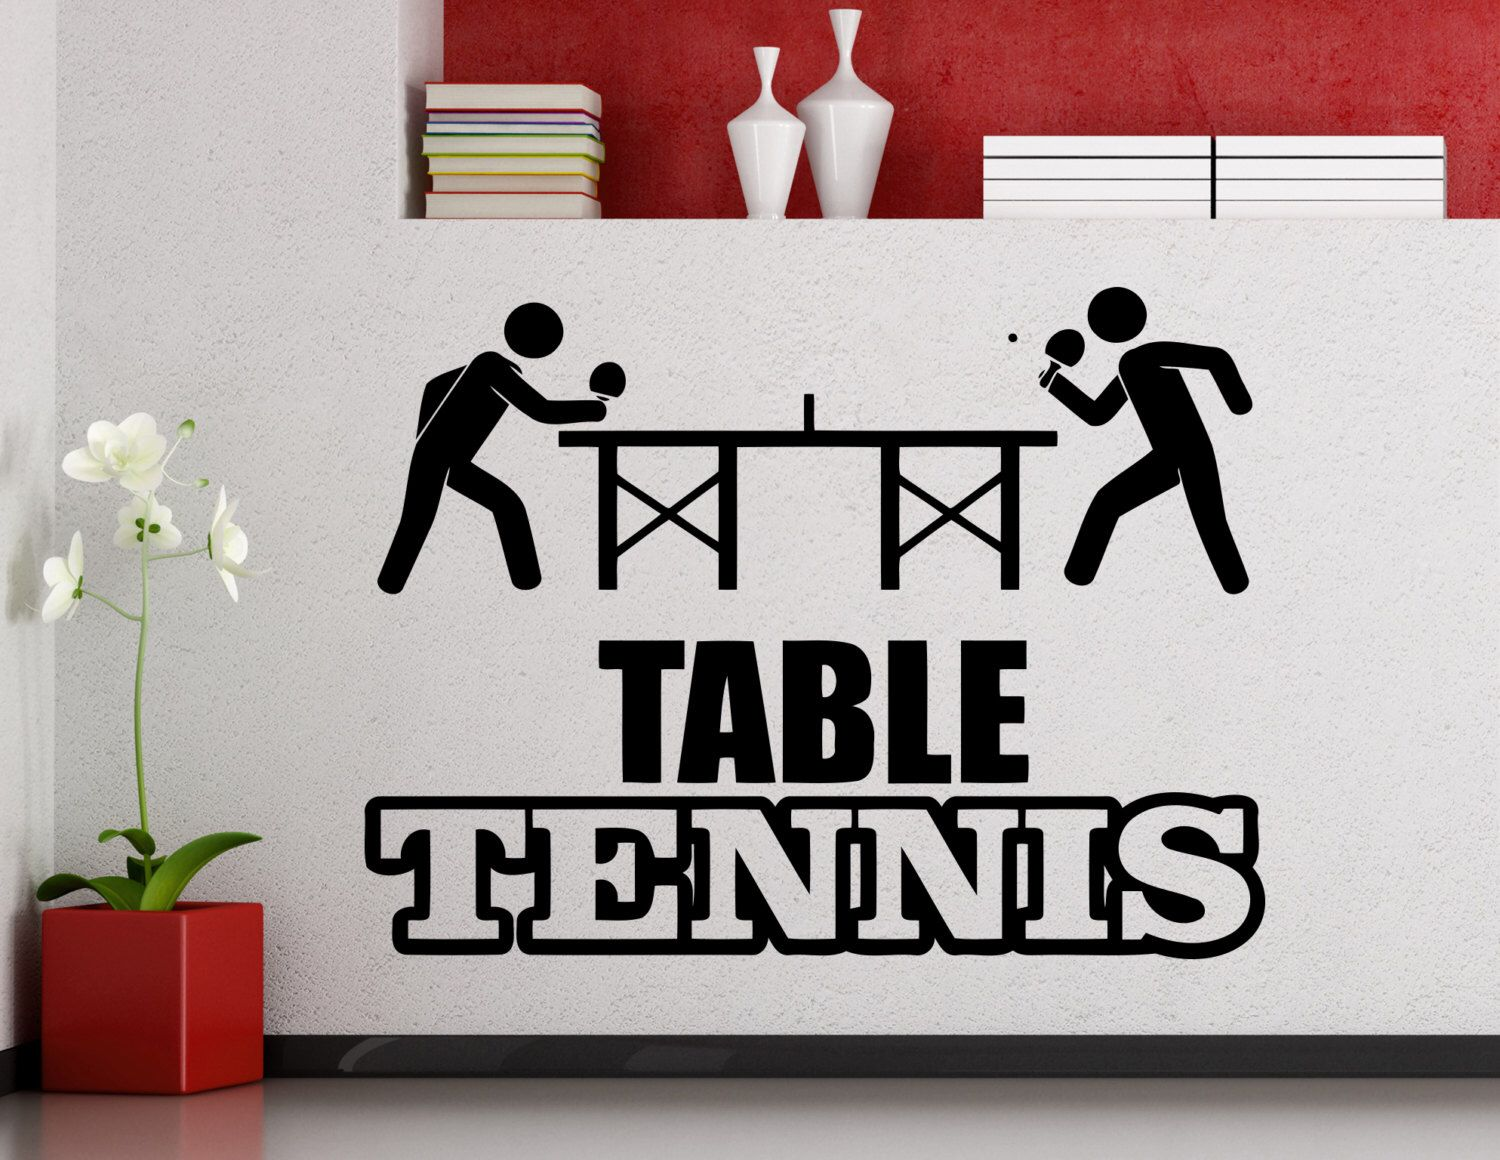 table tennis logo wall sticker sports ping pong vinyl decal home wall decal tabble tennis sports ping pong vinyl sticker home interior decoration waterproof high quality mural art mural